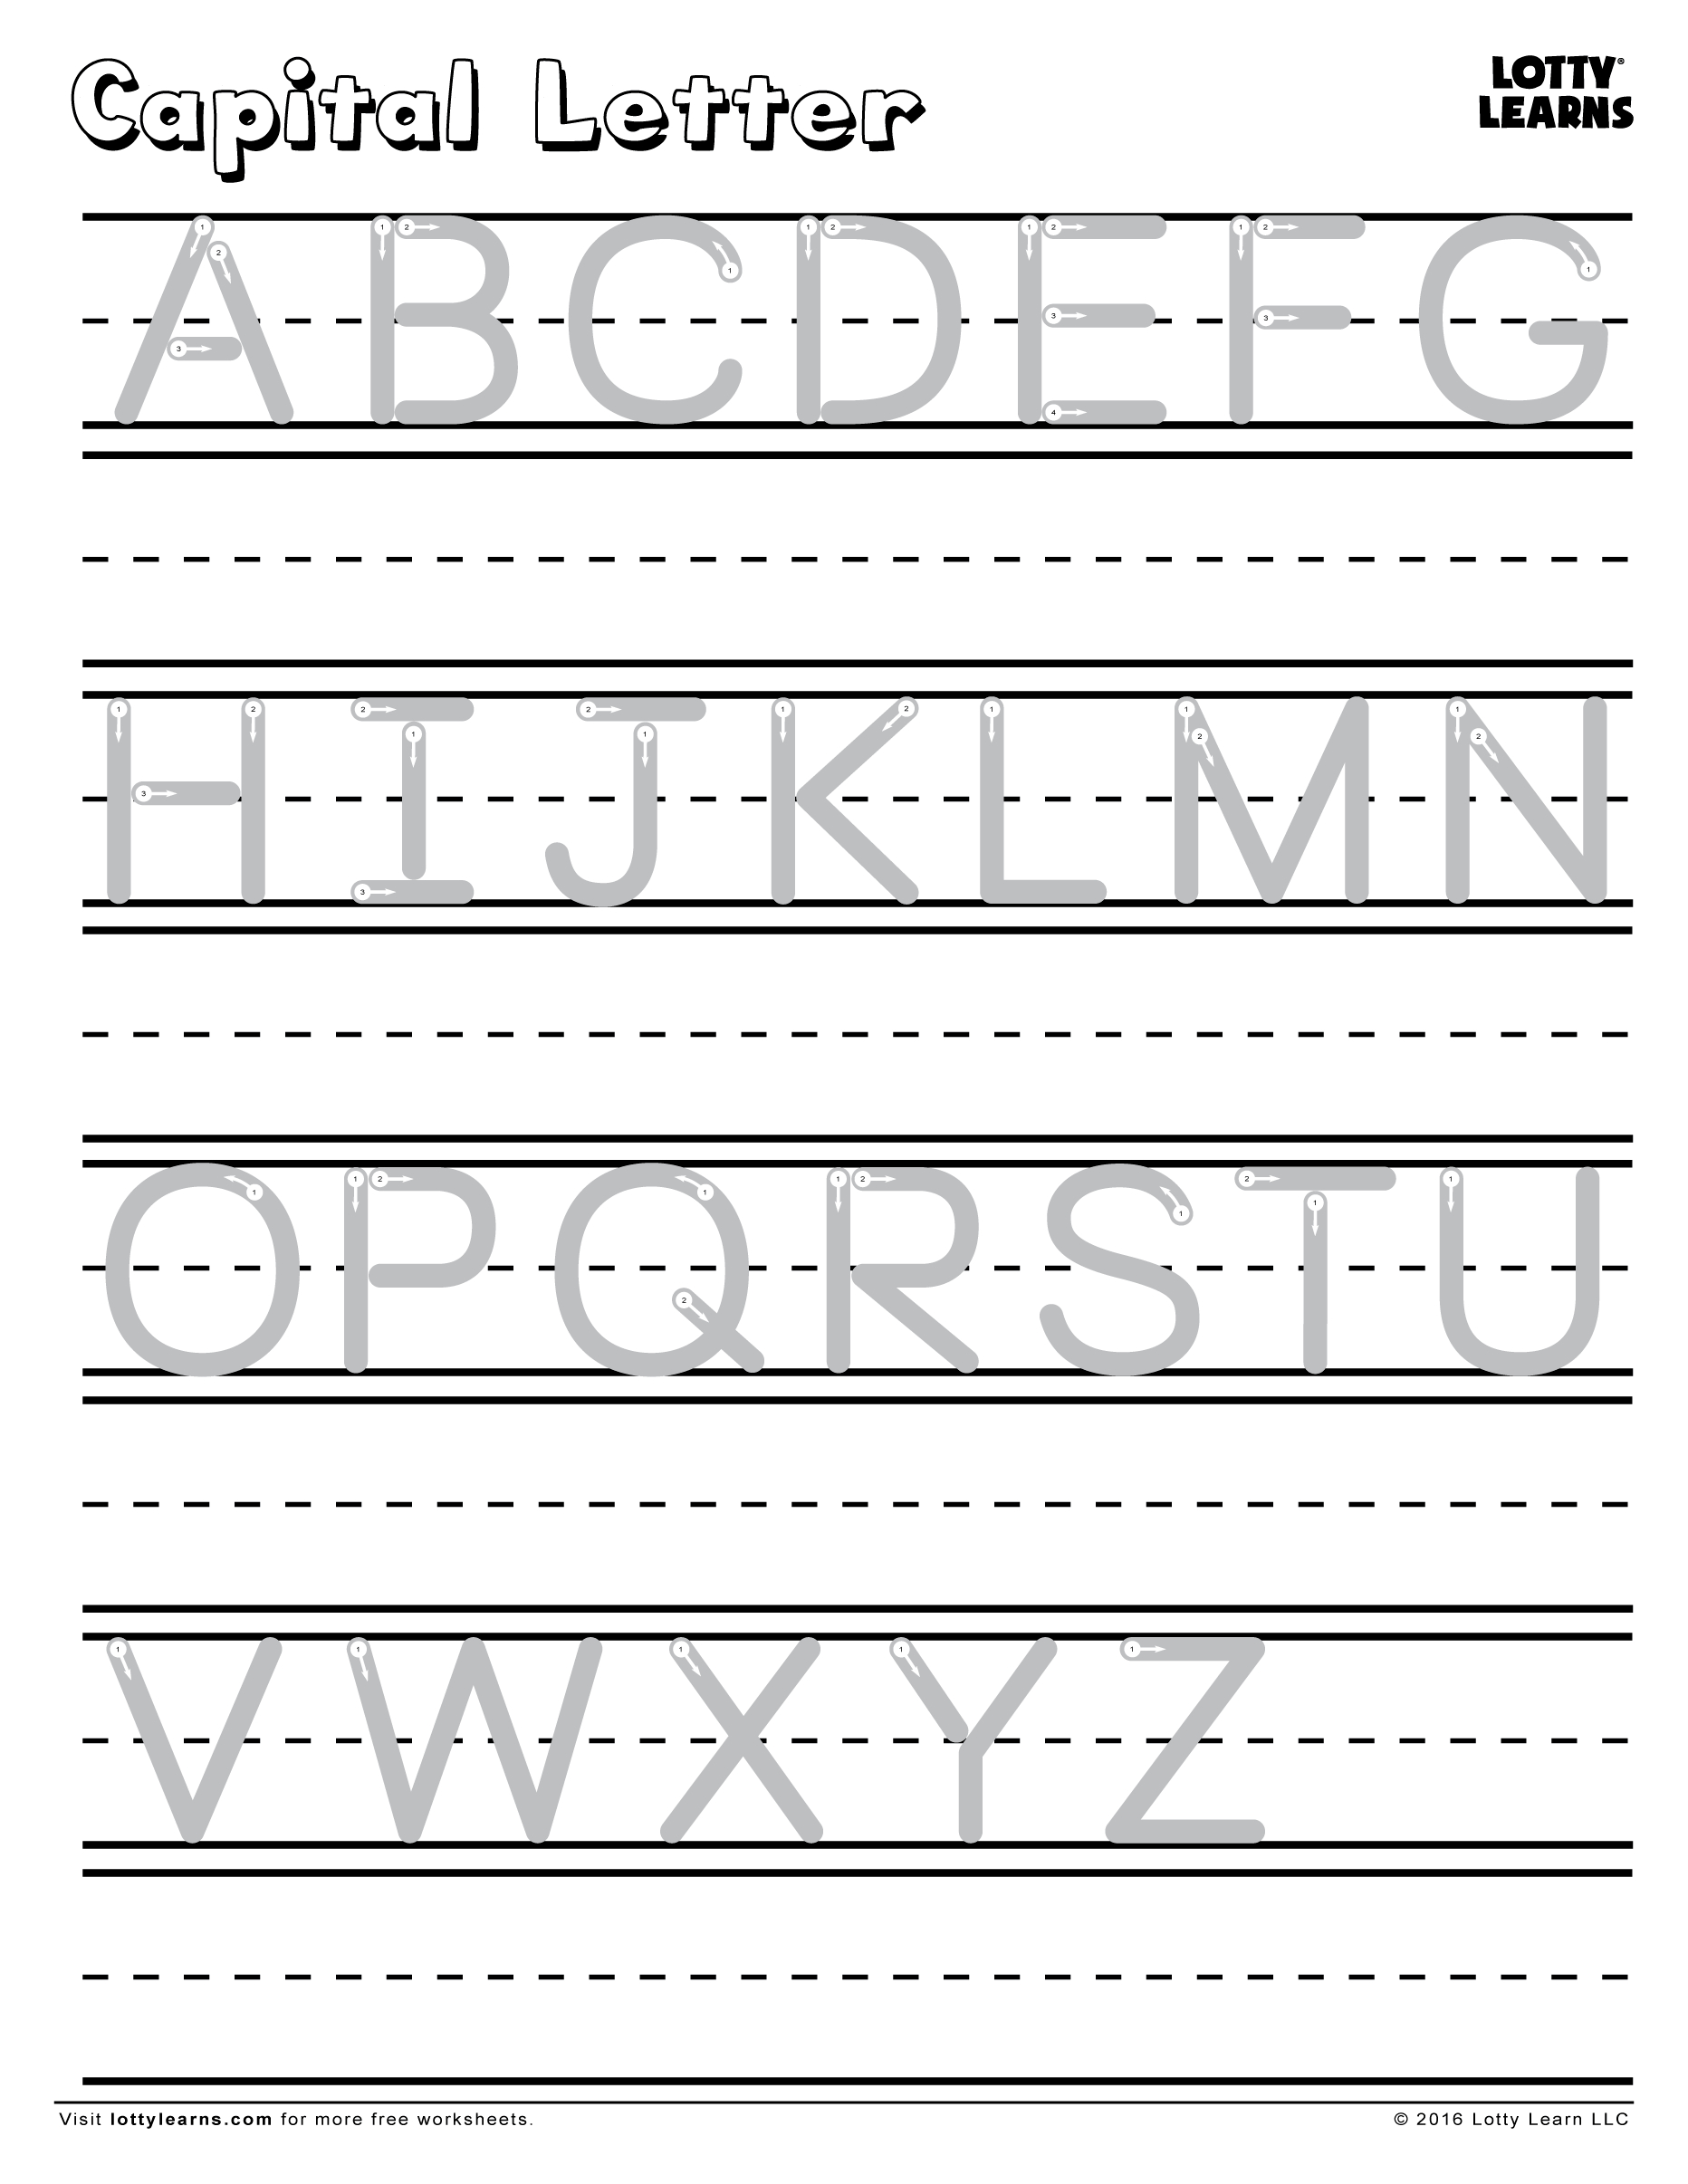 Capital Letter A-Z | Lotty Learns | Capital Letters in Alphabet Handwriting Worksheets A To Z